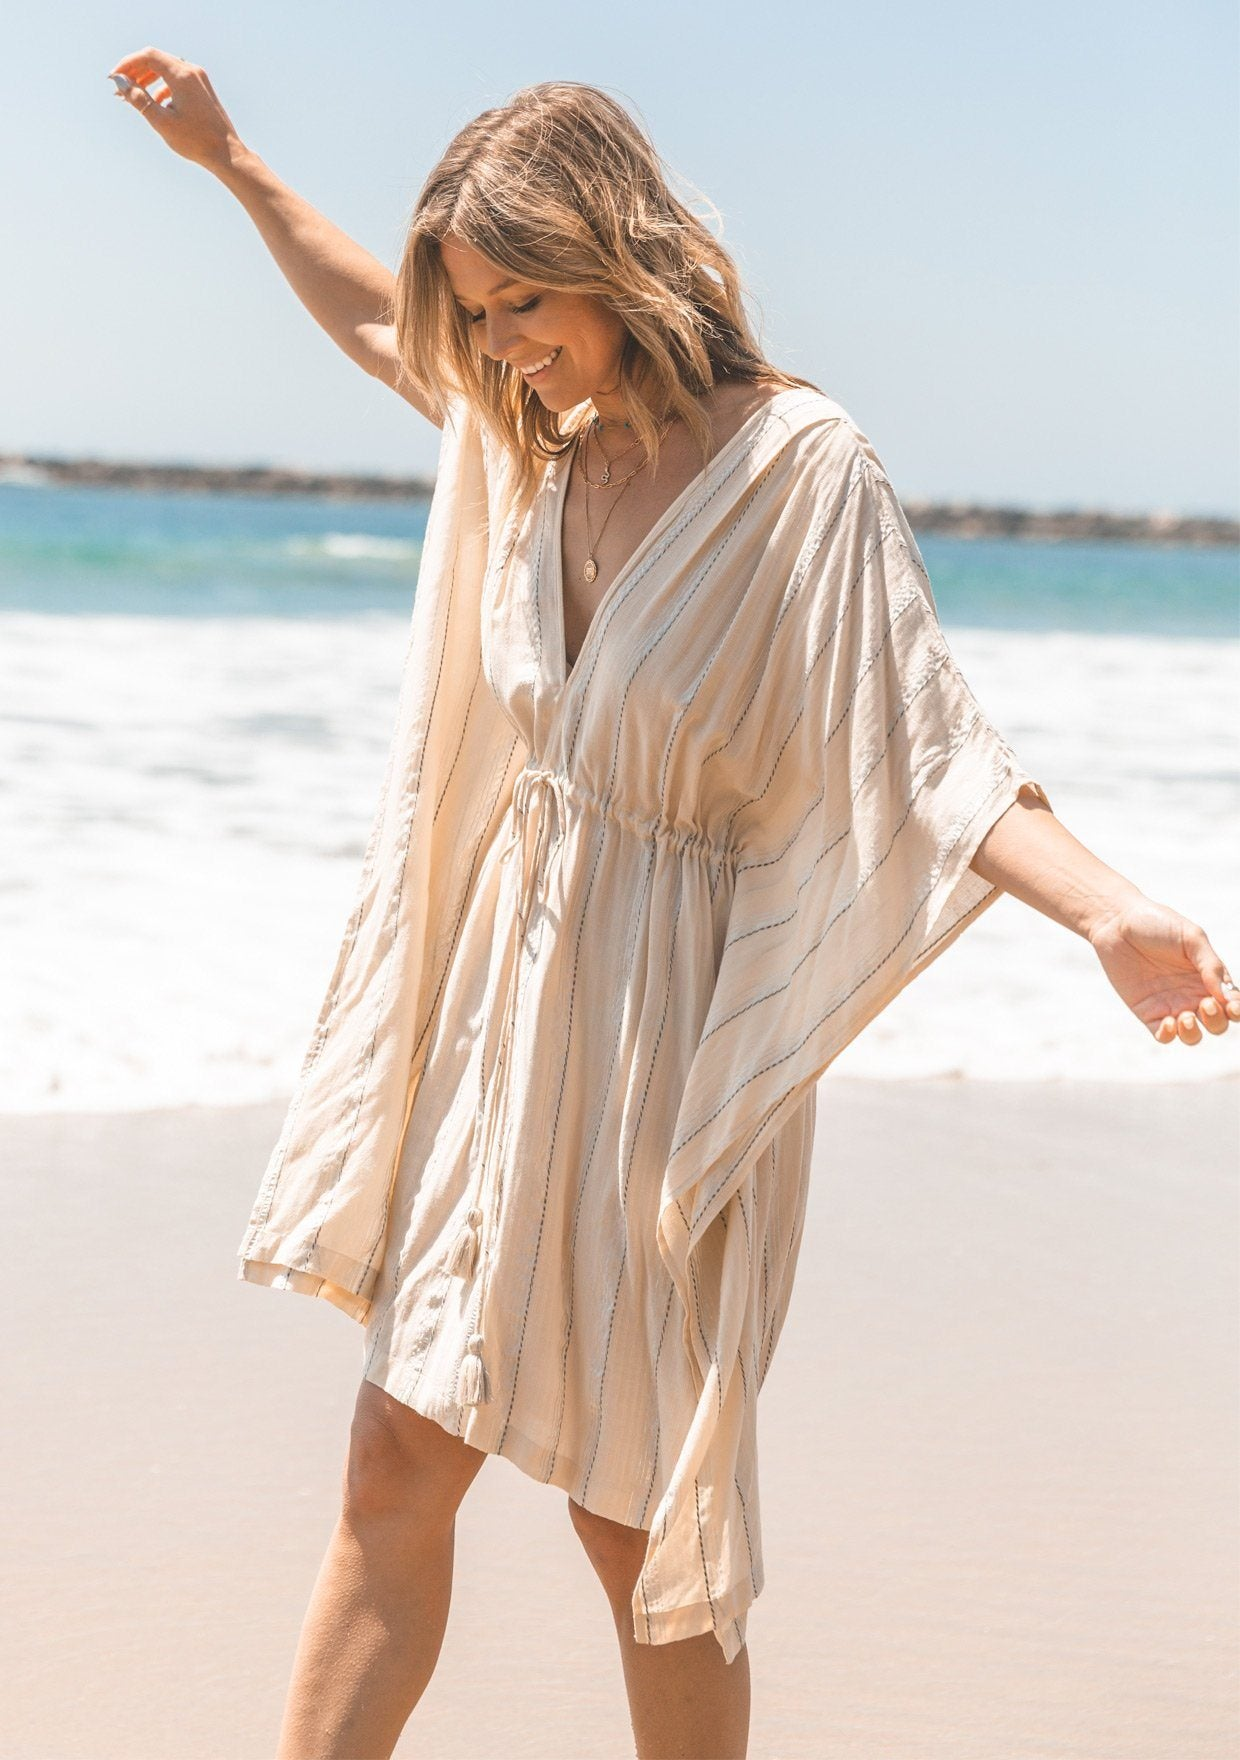 [Color: OffWhite/Silver] Lovestitch beautiful bohemian beach caftan dress that doubles as a swimsuit cover up. Flattering kimono sleeves, slimming tassel tie cinched waist, lightweight fabric. The perfect bohemian mermaid beach dress!